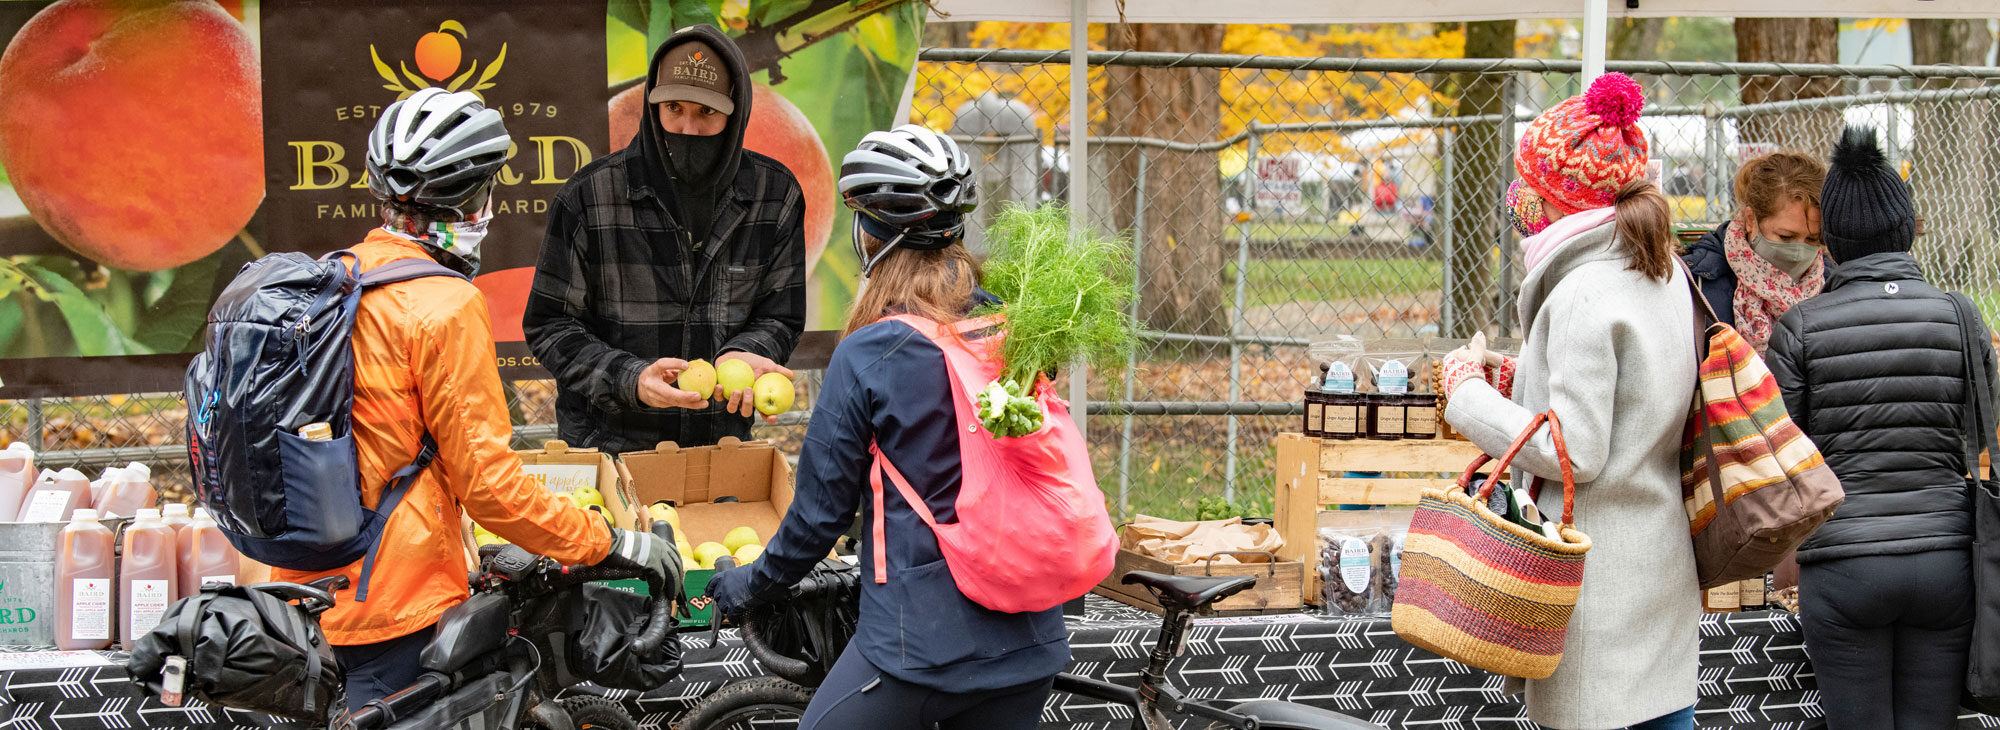 Cyclists shopping for produce at the Portland Farmers Market.